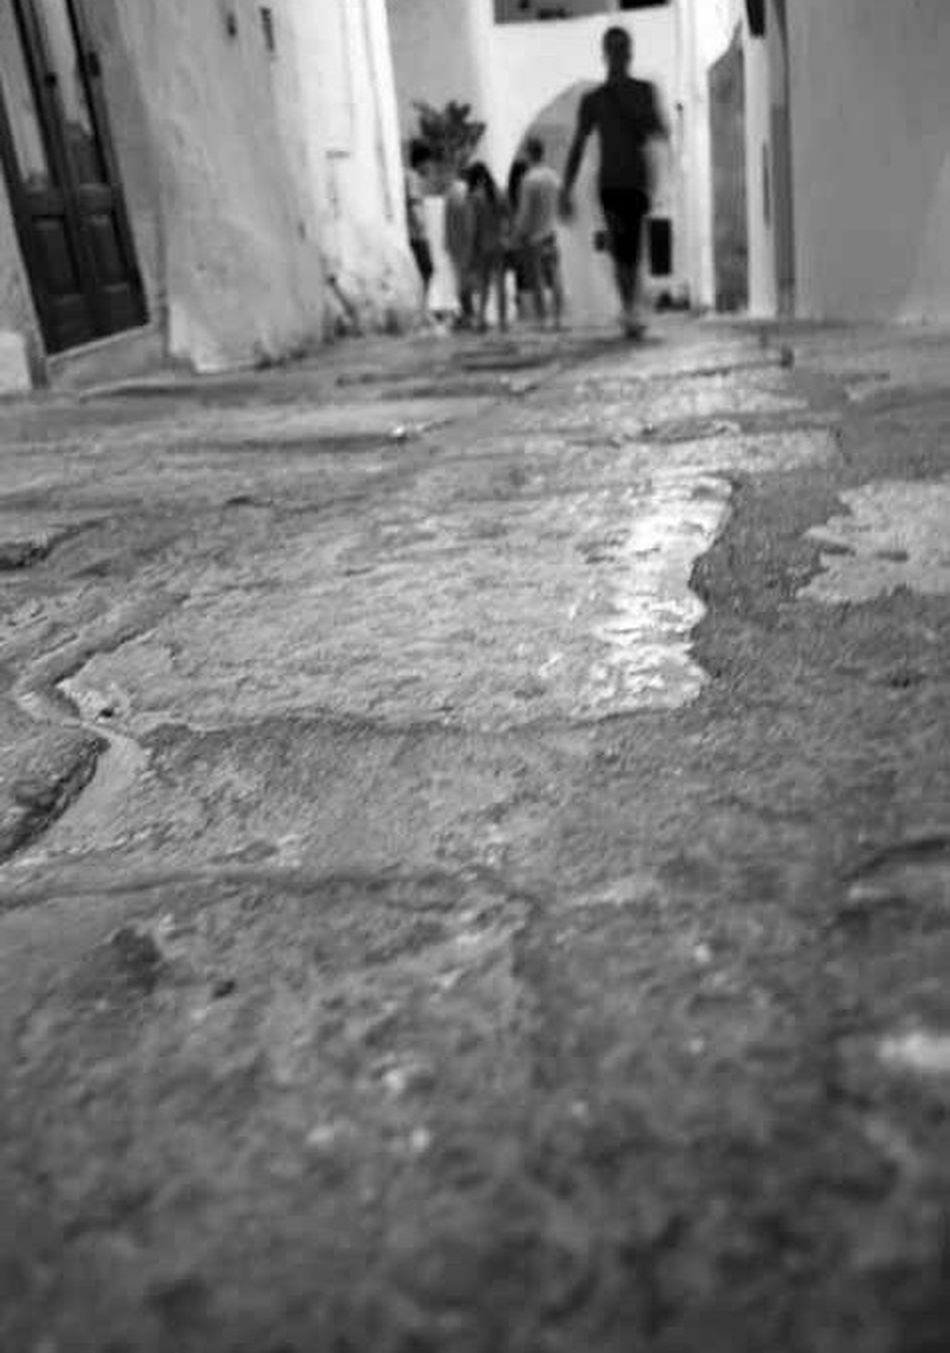 Ostuni Biancoenero Persone Strada Camminare Mattoni Pietra Up Close Street Photography capturing motion Capturing Motions